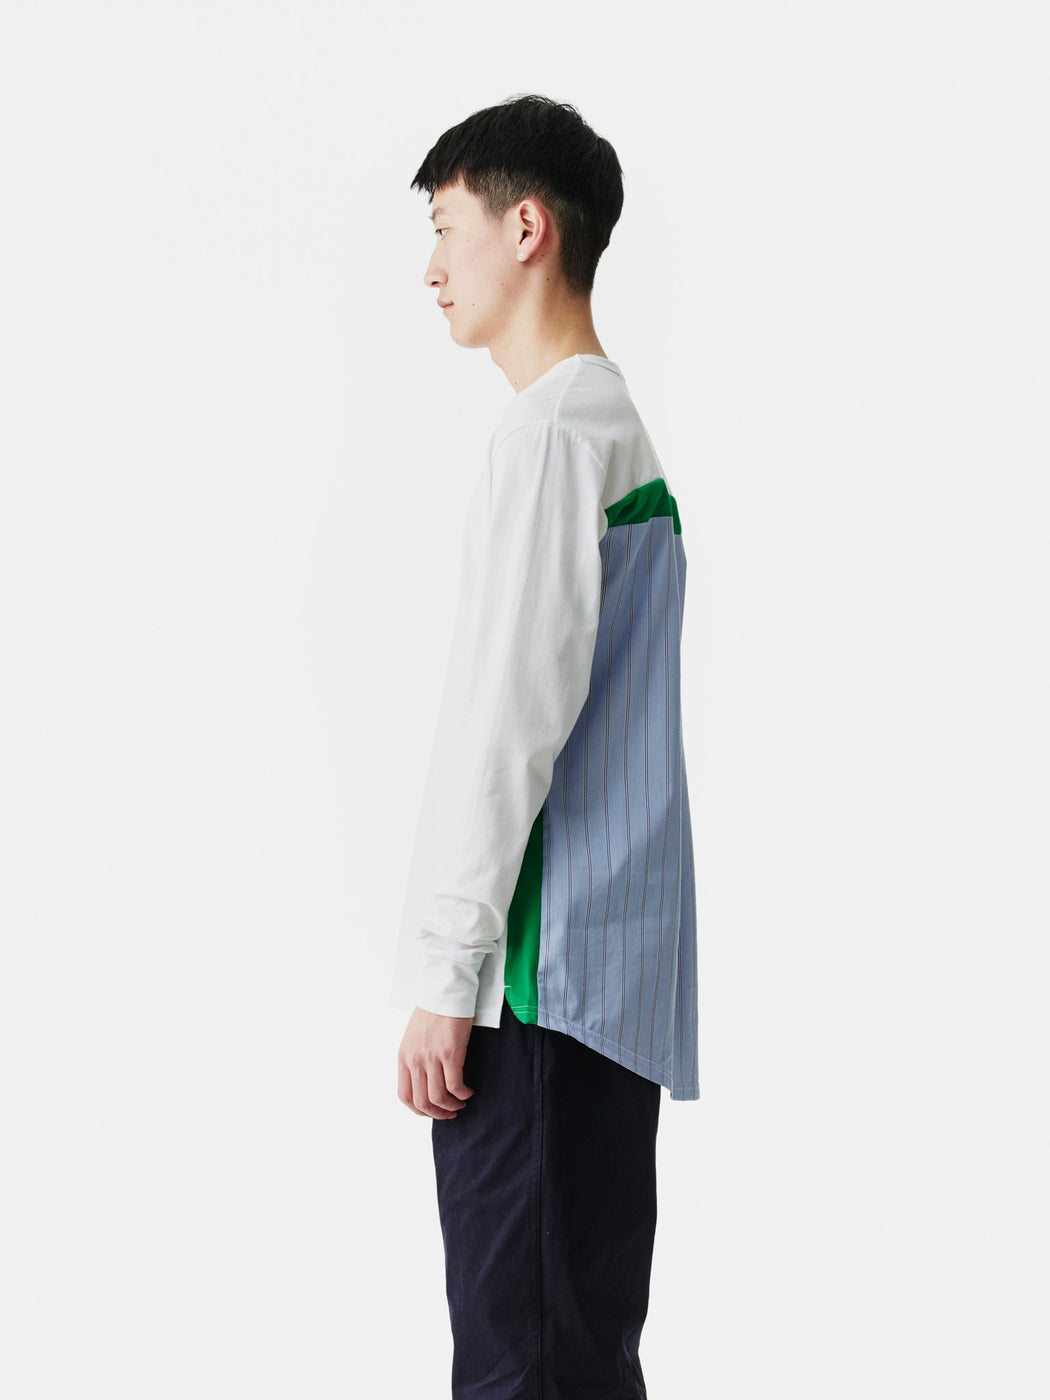 ALOYE Shirt Fabrics Long Sleeve T-shirt White-Green-Blue Stripe